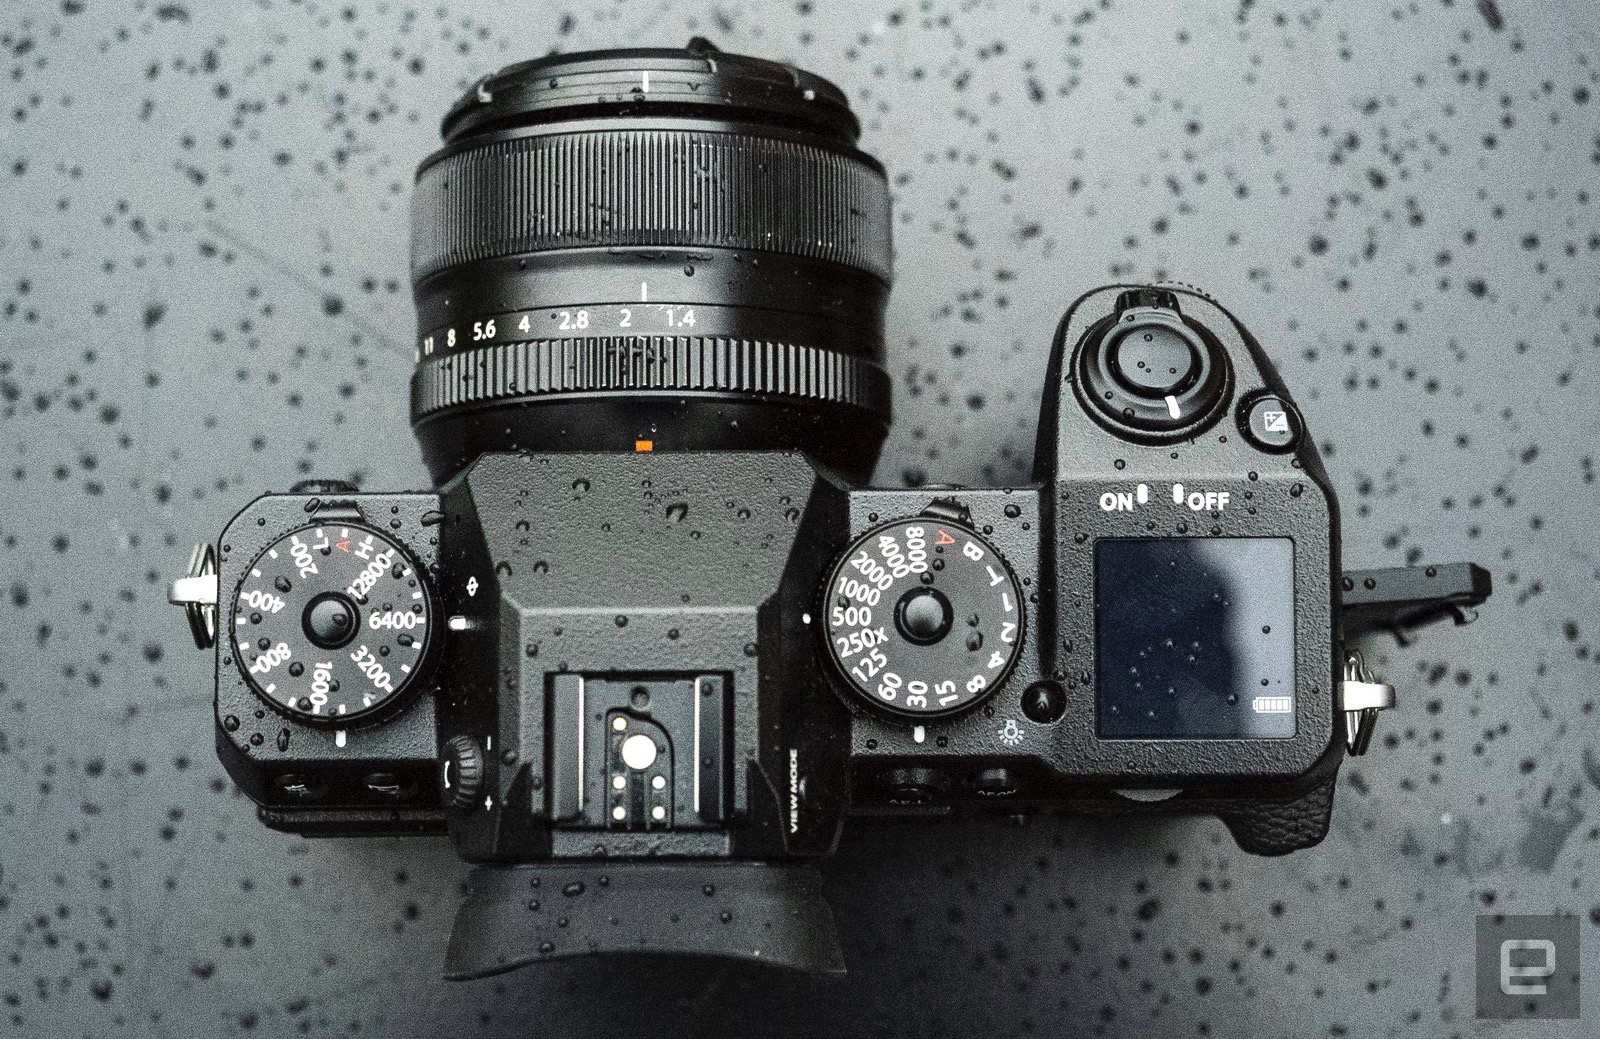 Fujifilm XH-1 review: Beautiful photos, but lacking X-series allure